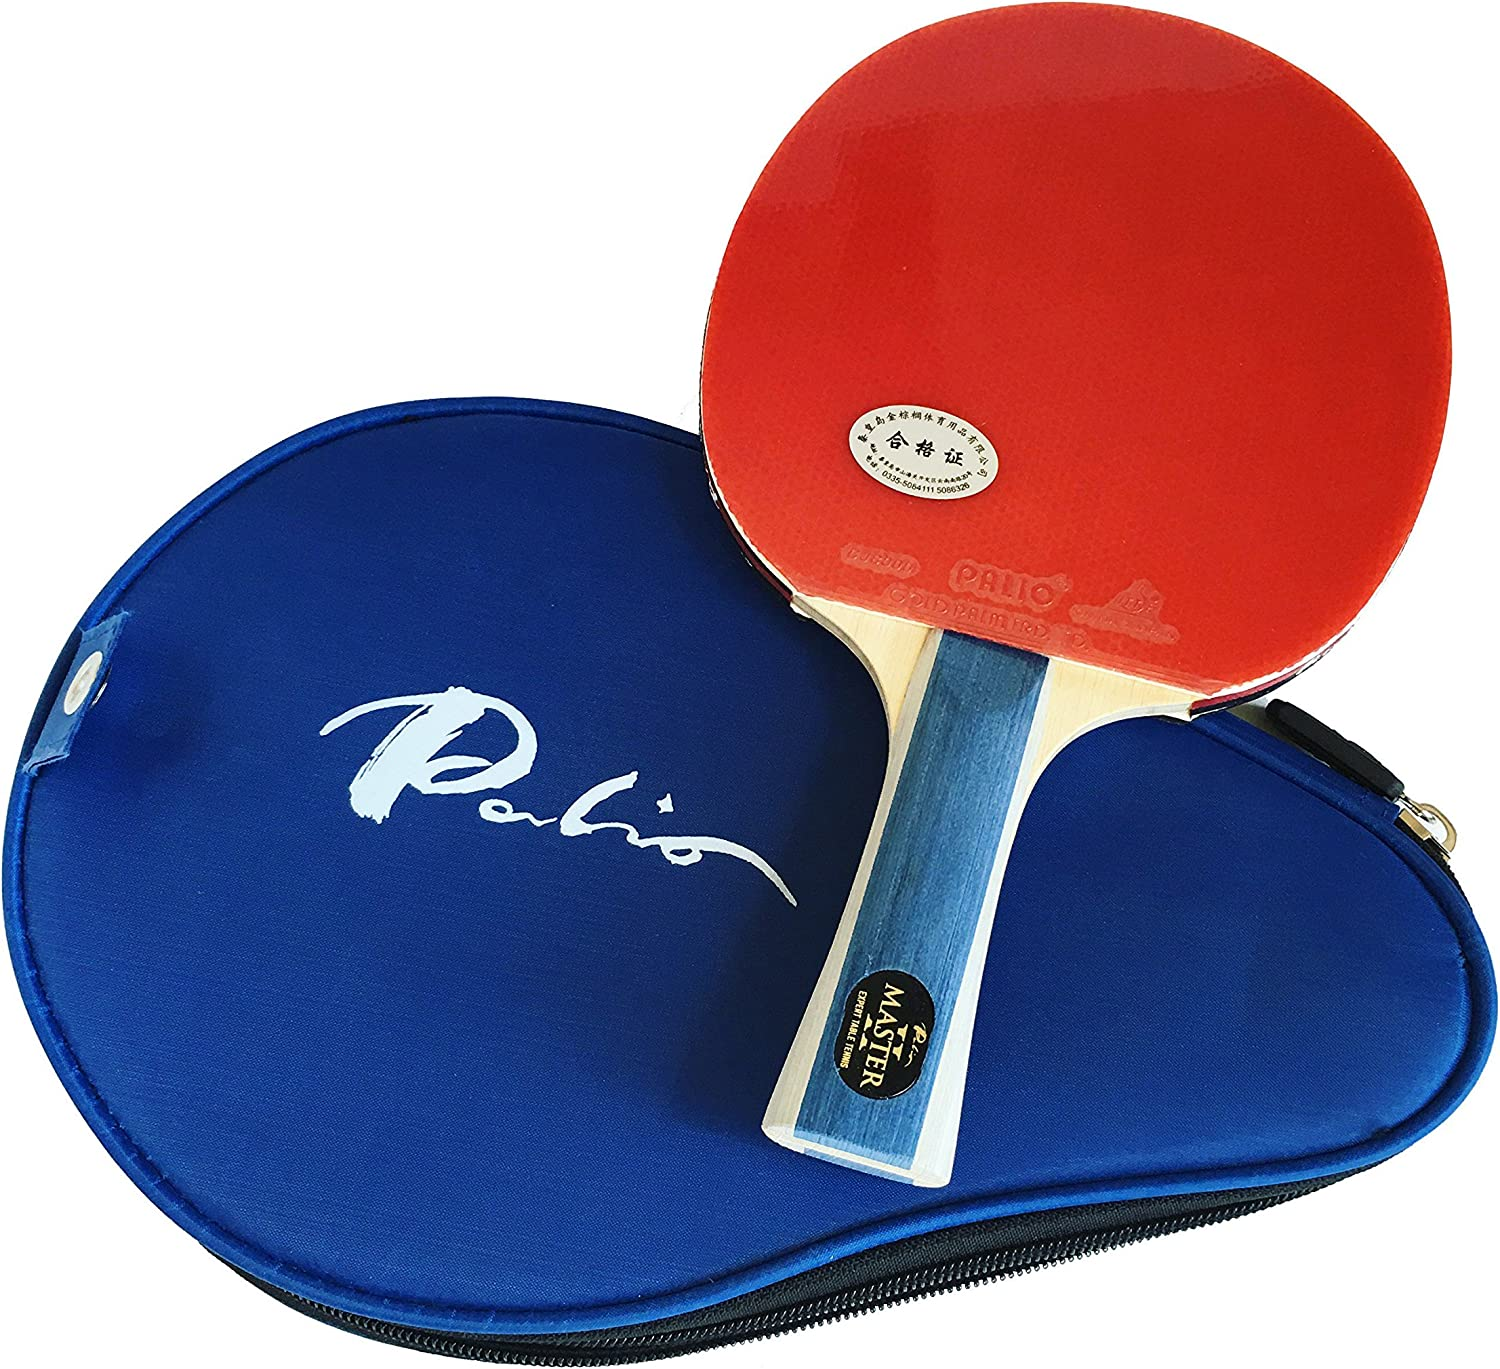 Milwaukee Mall Palio Master 2.0 Table Tennis Racket Fl Popular Case ITTF - Approved